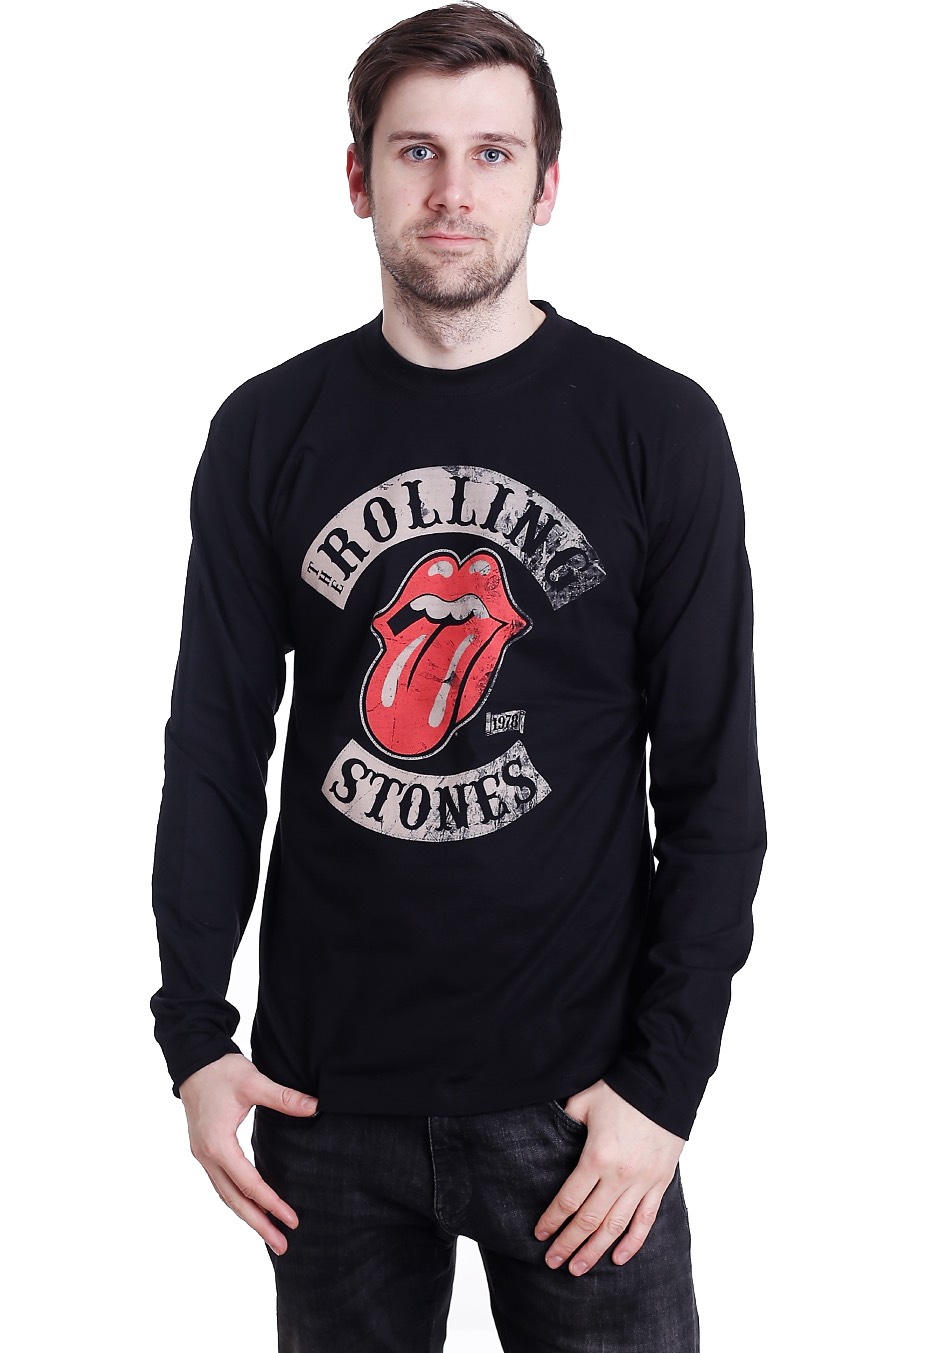 Rolling Stones Official Website Tour